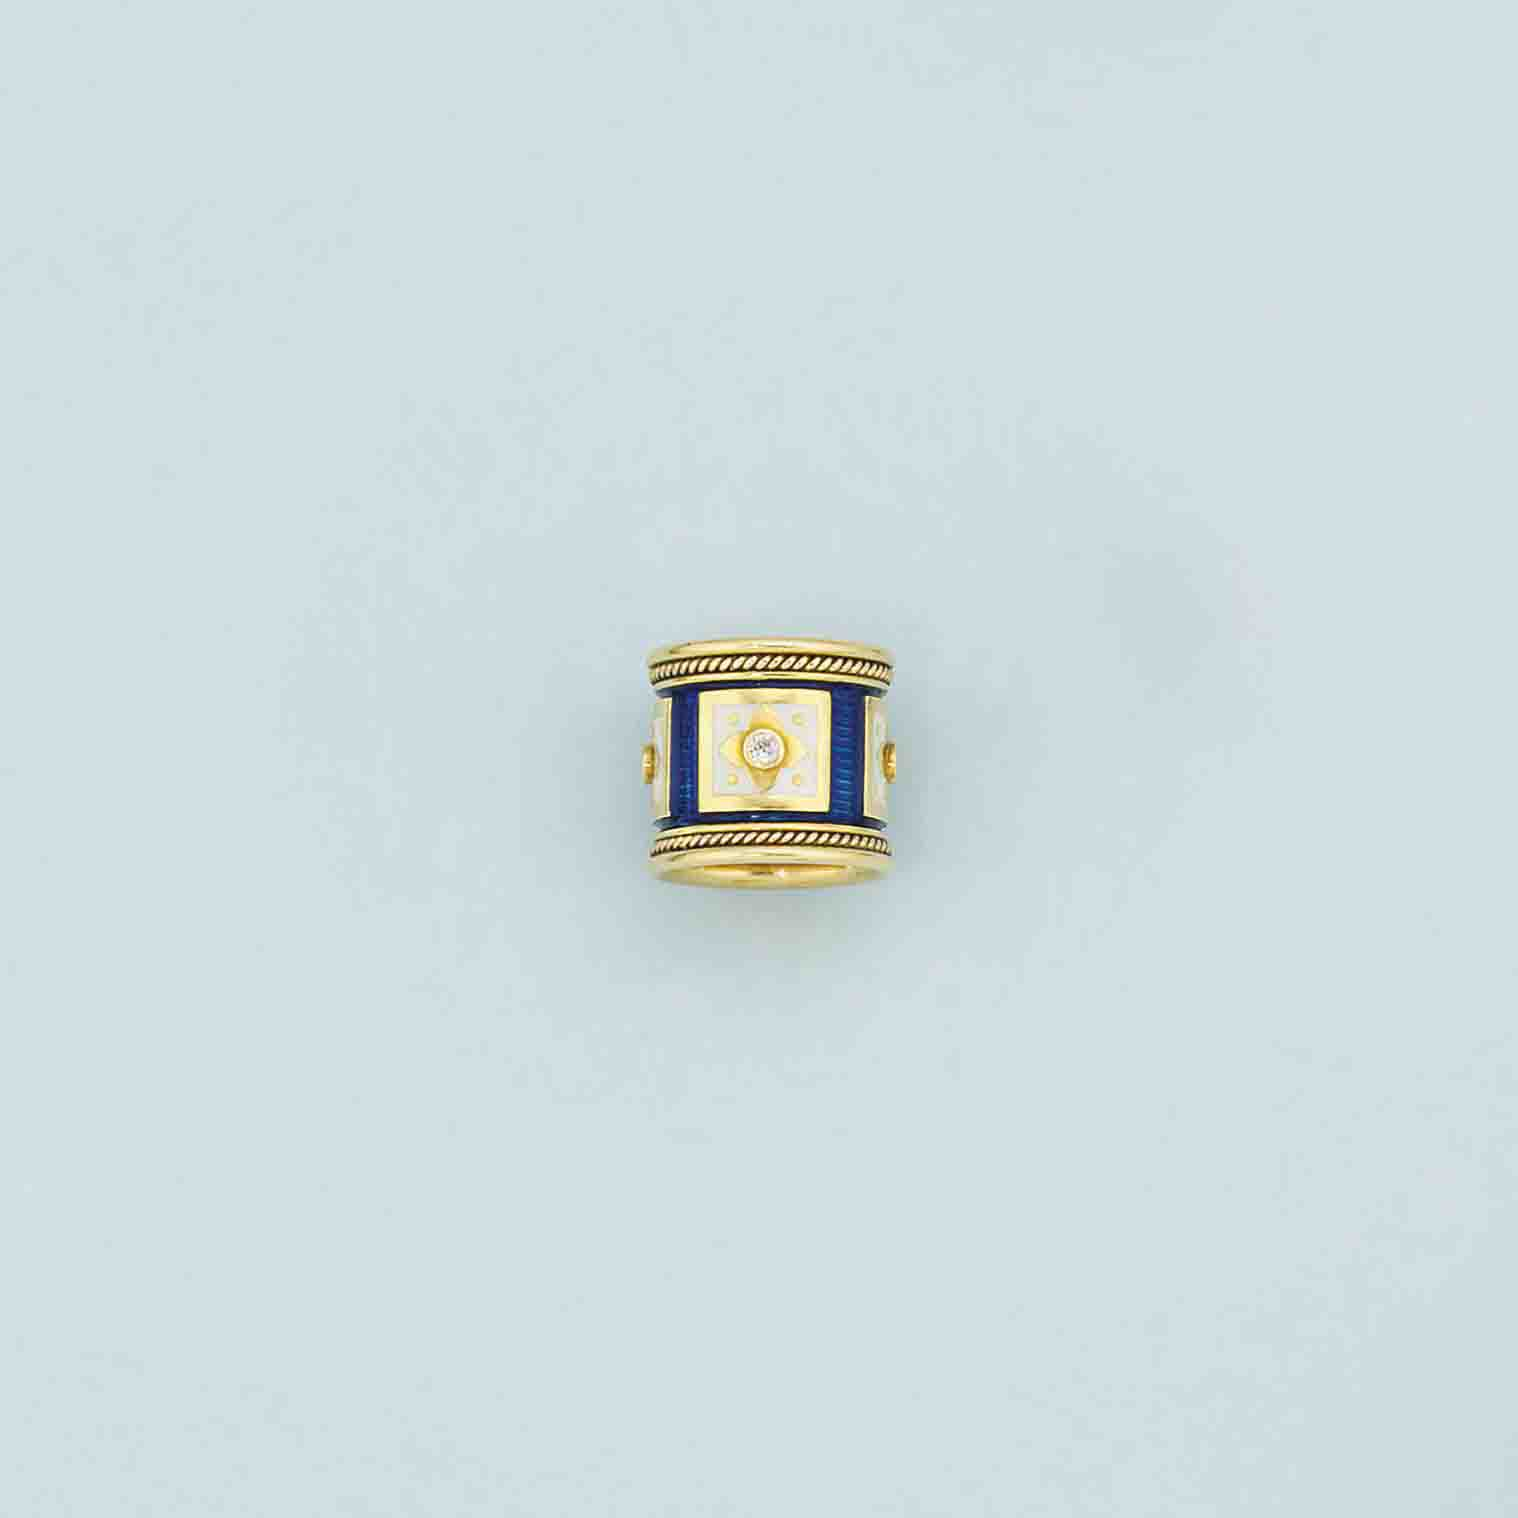 An 18ct. gold, diamond and enamel ring, by Elizabeth Gage